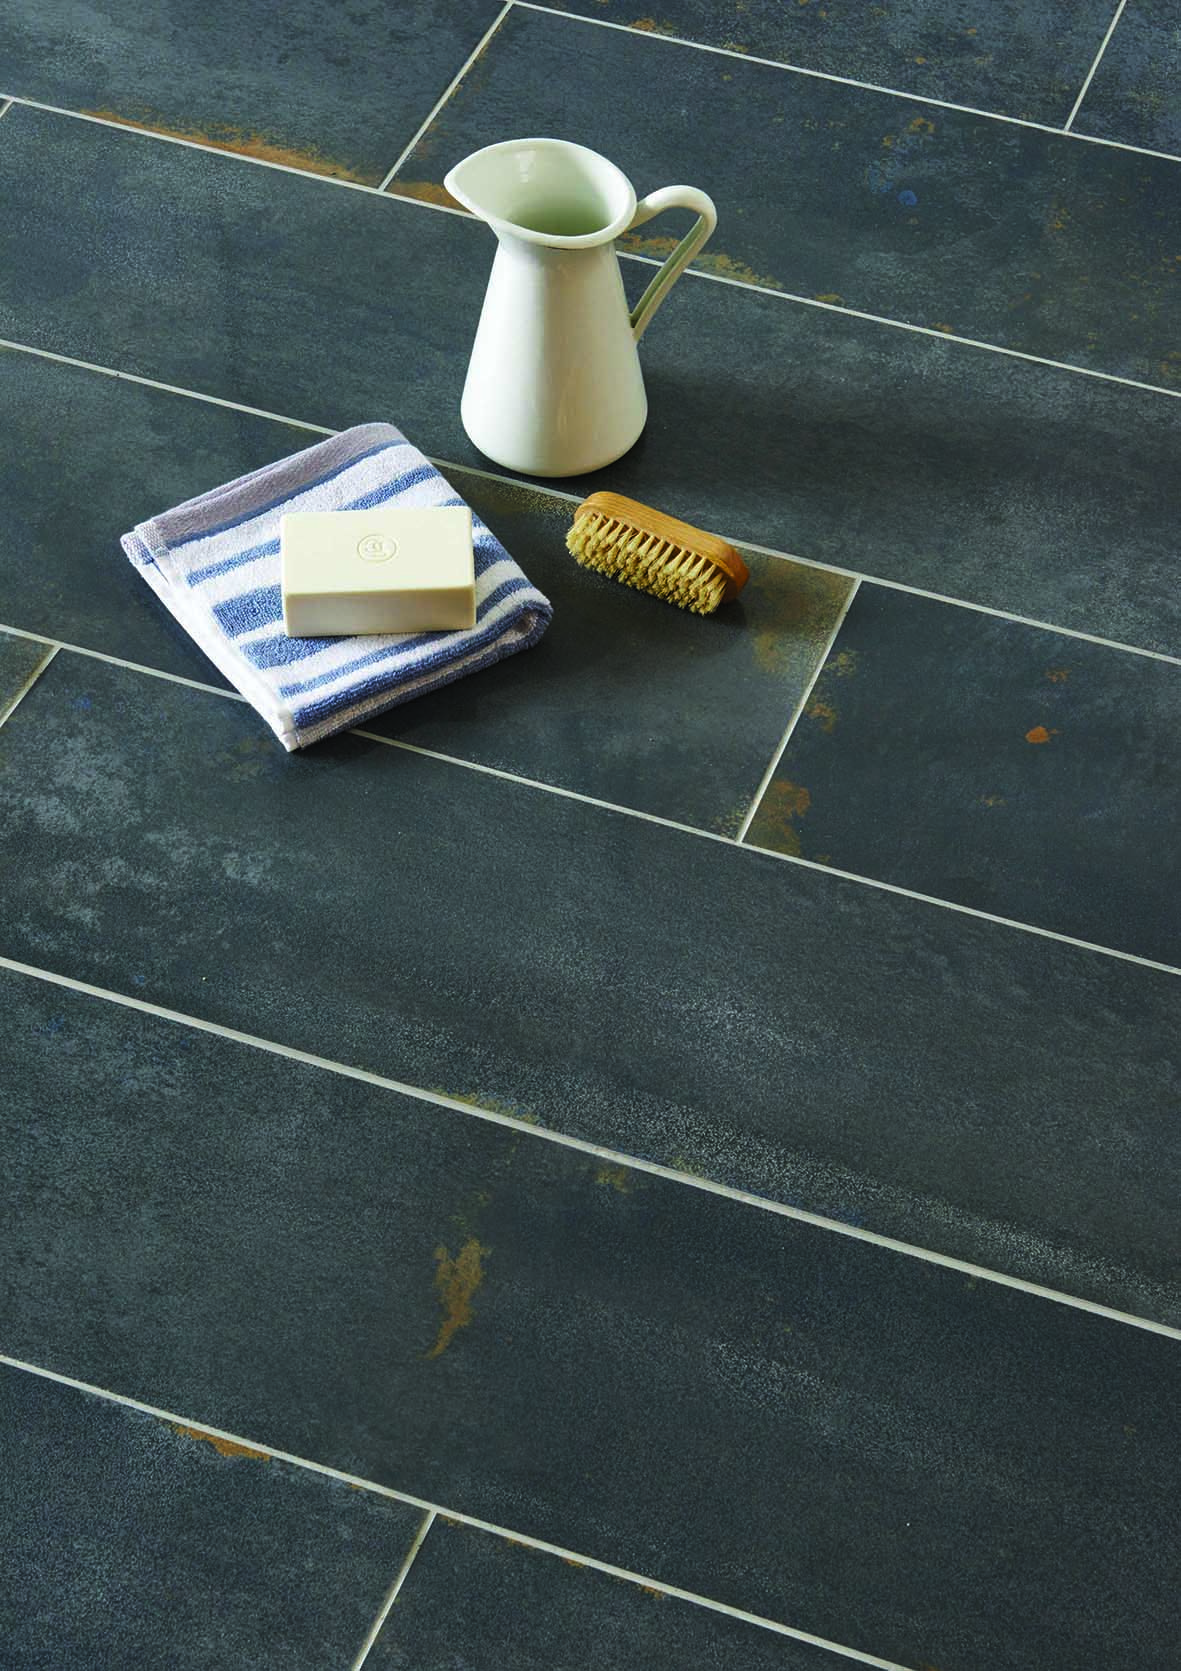 New Oxide Tiles By Original Style Black Latto A Semi Polished Finish On Aged Effect Plank Get Your Shabby Chic Look Now